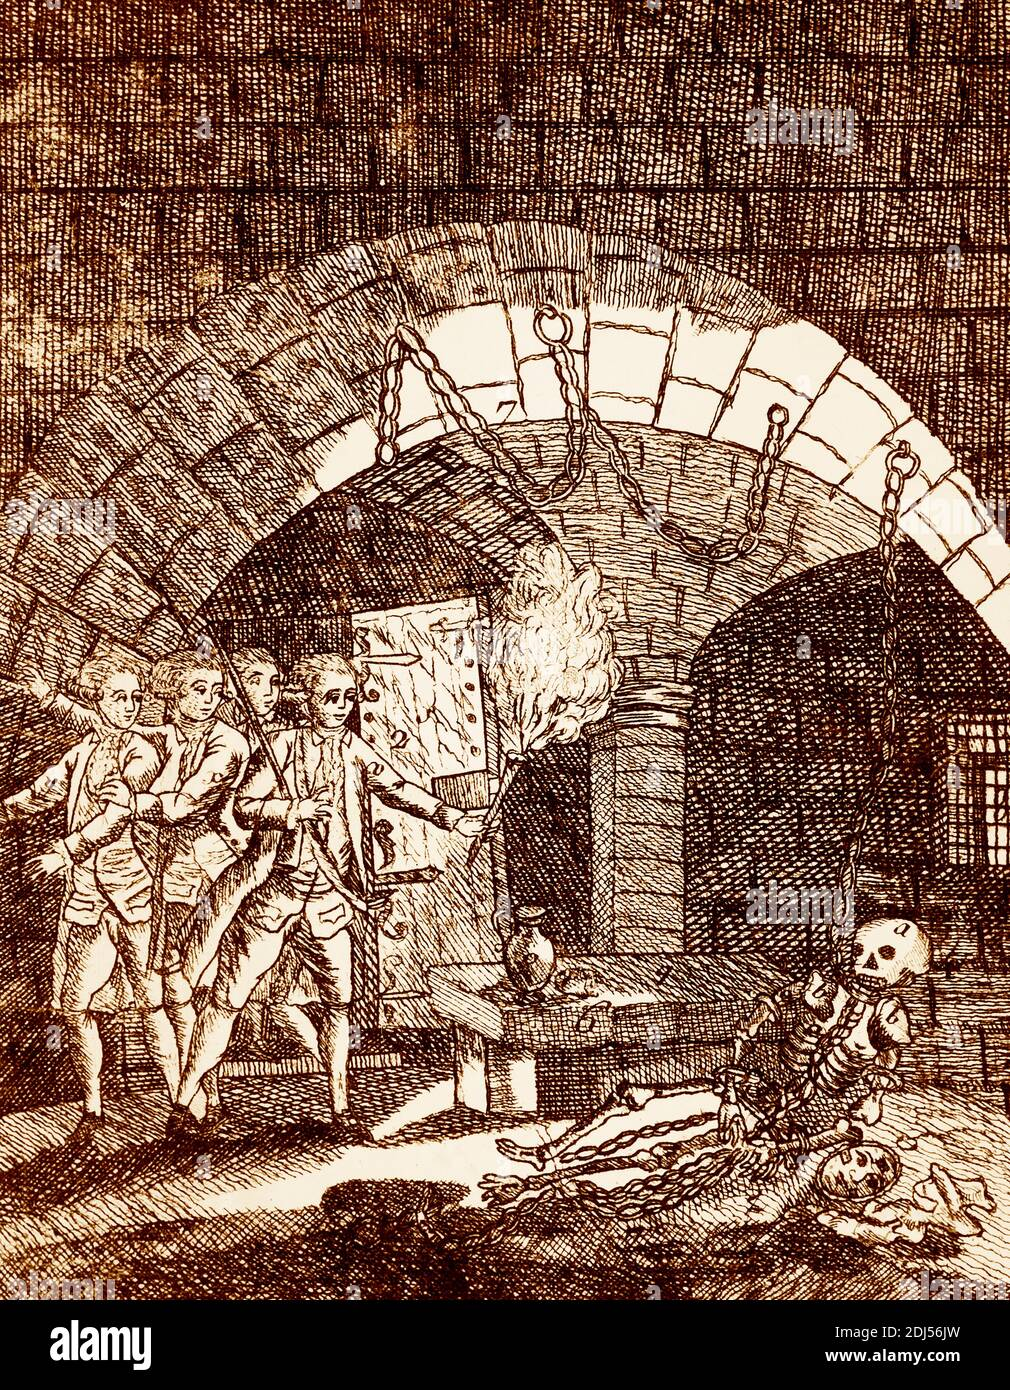 Skeleton of the man in the iron mask found in Bastille prison Stock Photo